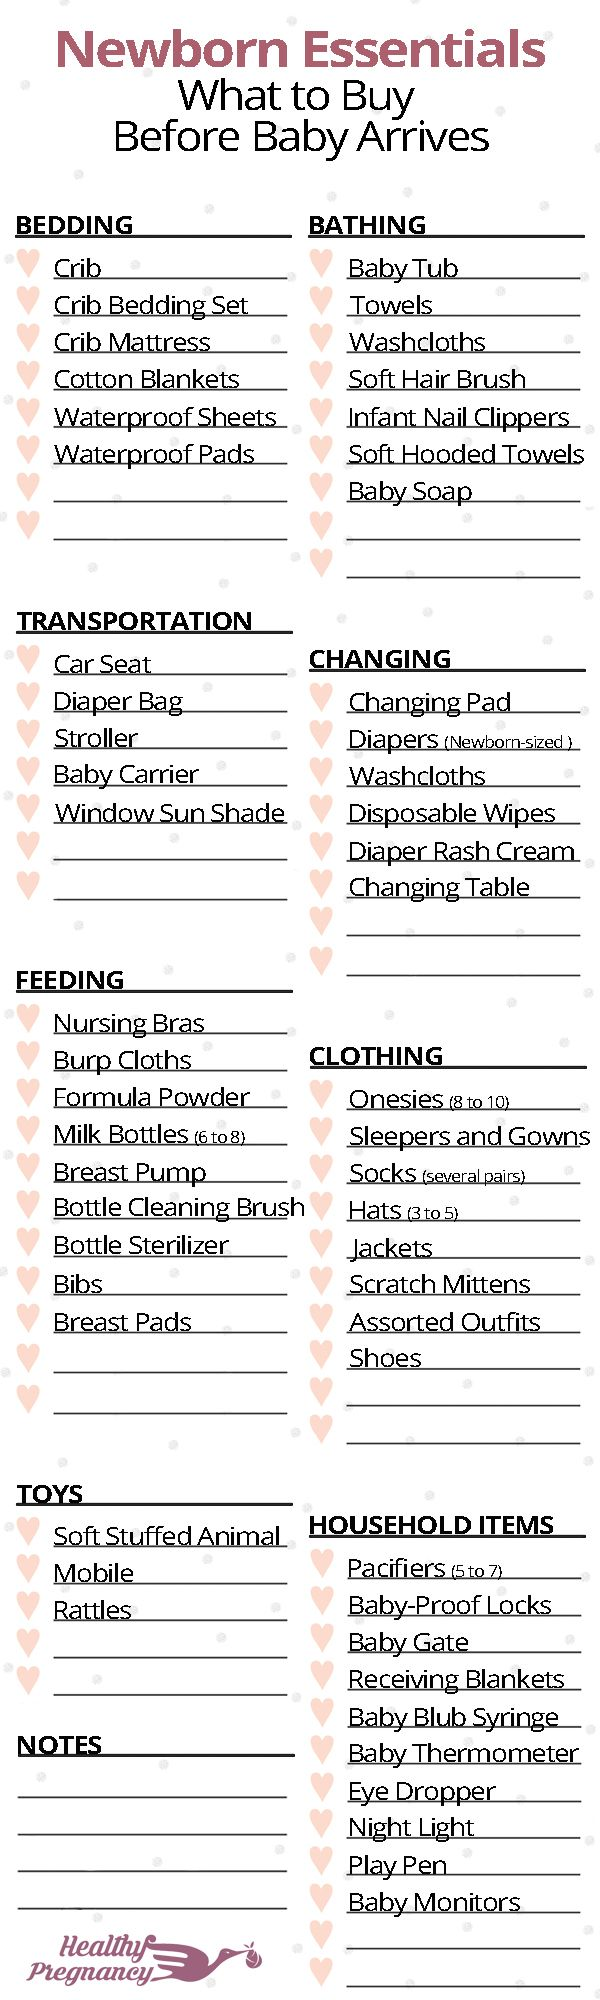 A complete shopping checklist for newborns. Everything you will want to stock up on before baby arrives.  Pregnancy   Pregnant   Shopping   Baby Items   Newborn Essentials